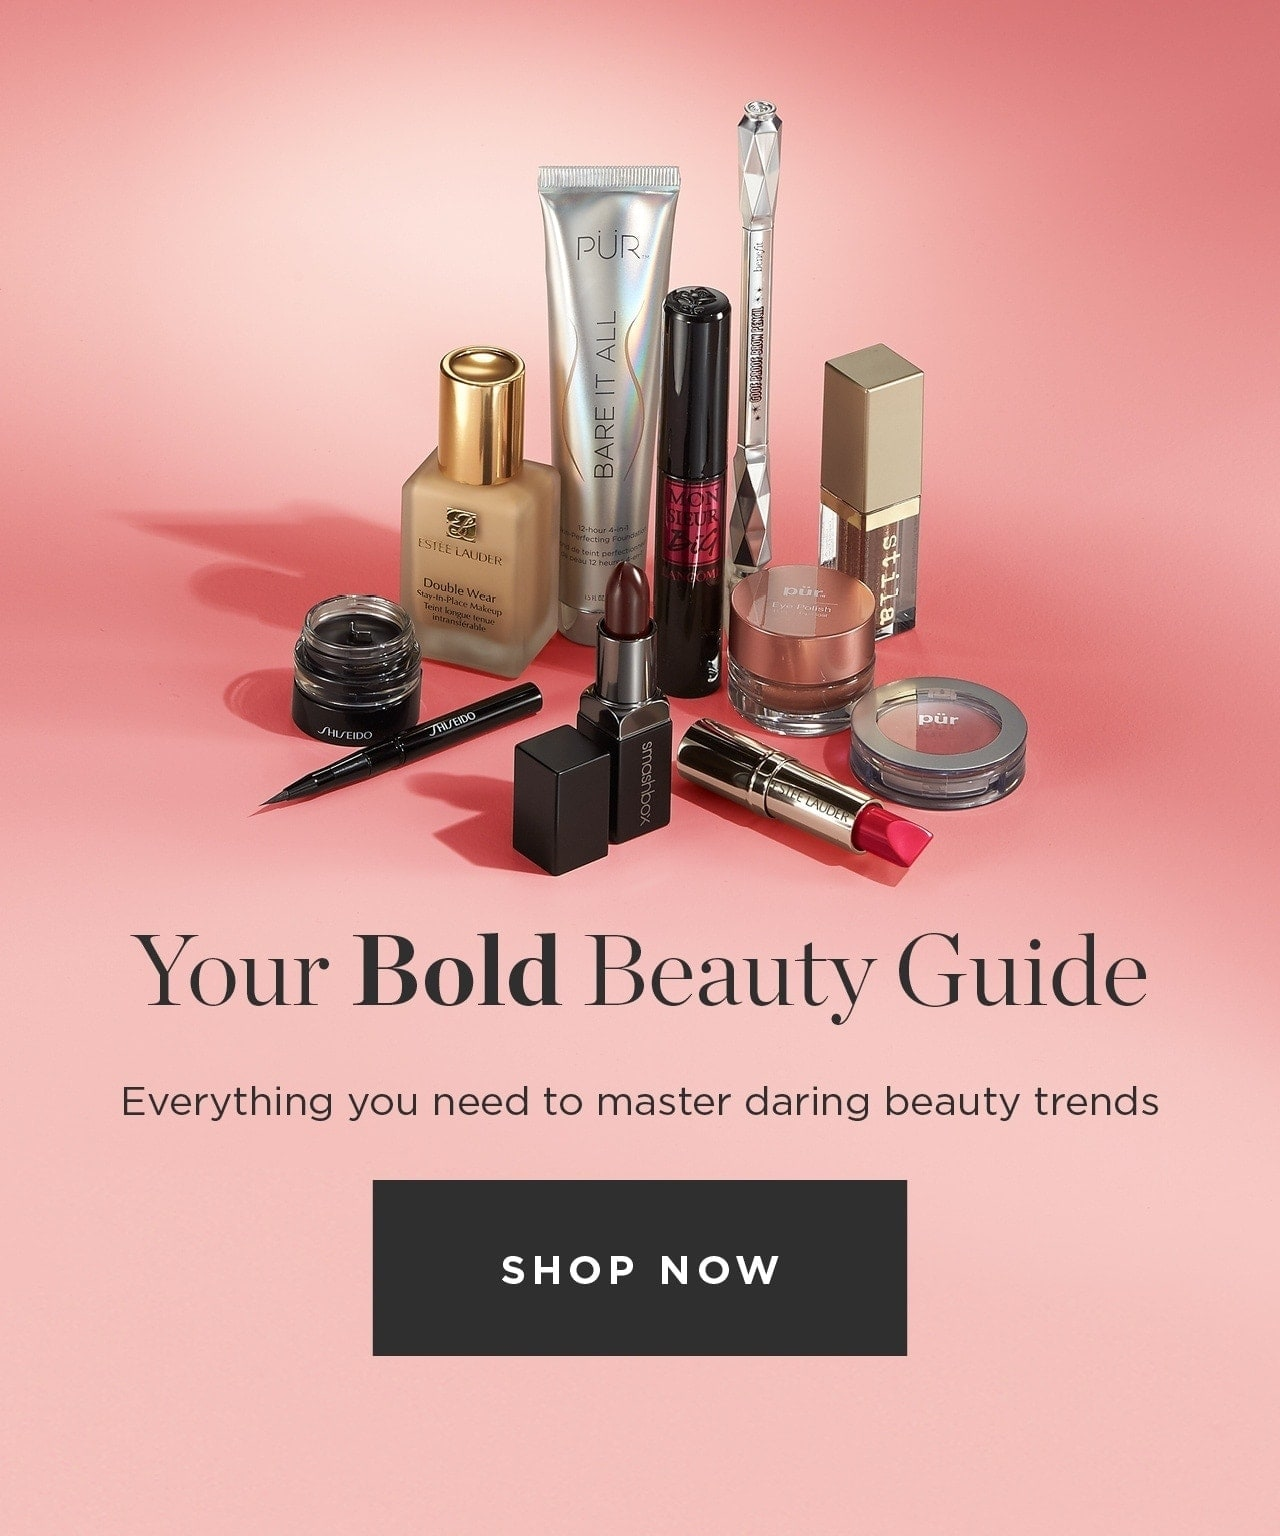 Your bold beauty guide. Everything you need to master daring beauty trends